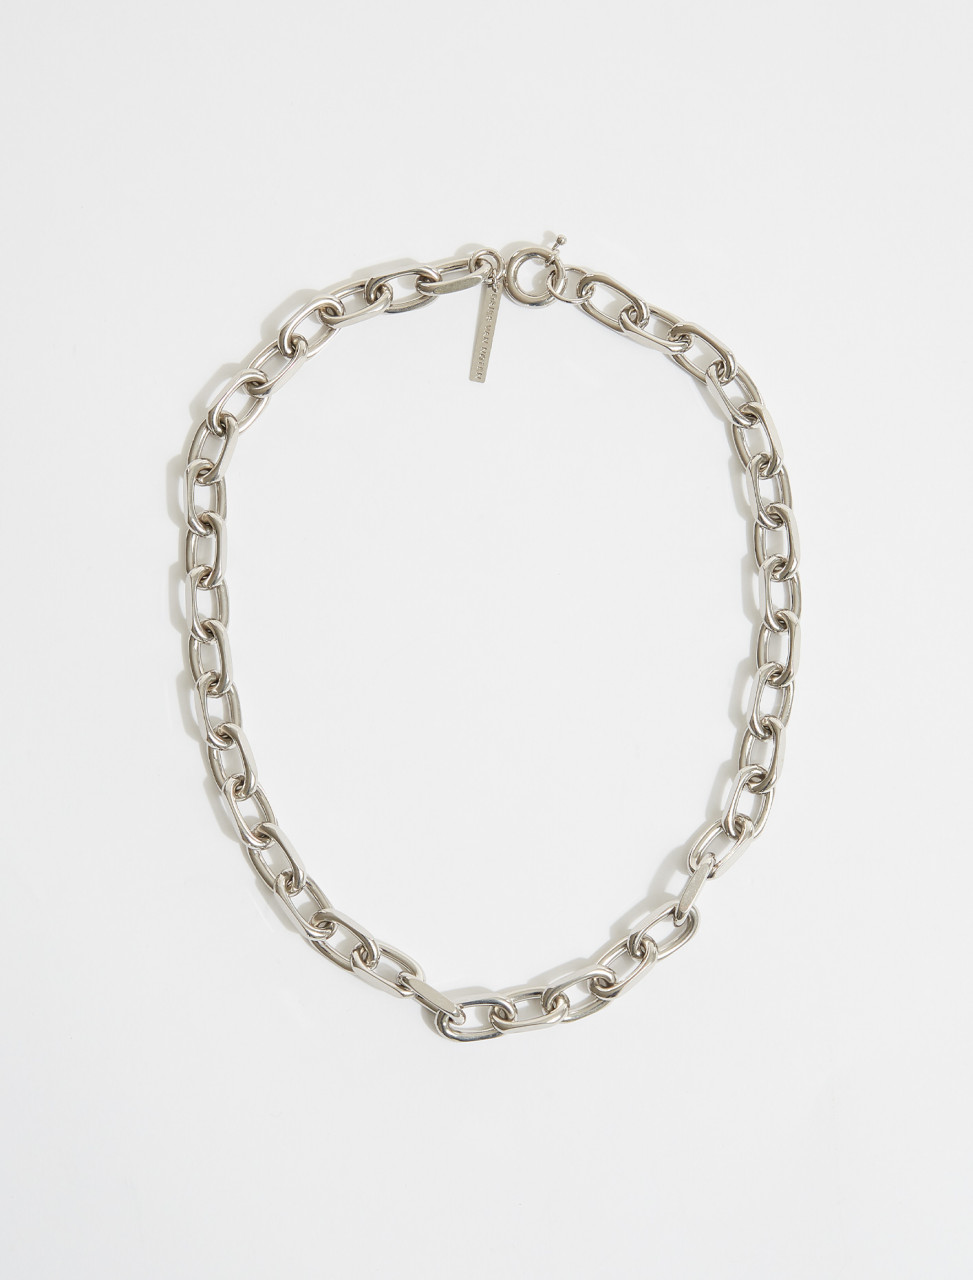 211-29101-050-952 DRIES VAN NOTEN LARGE CHAIN NECKLACE IN SILVER